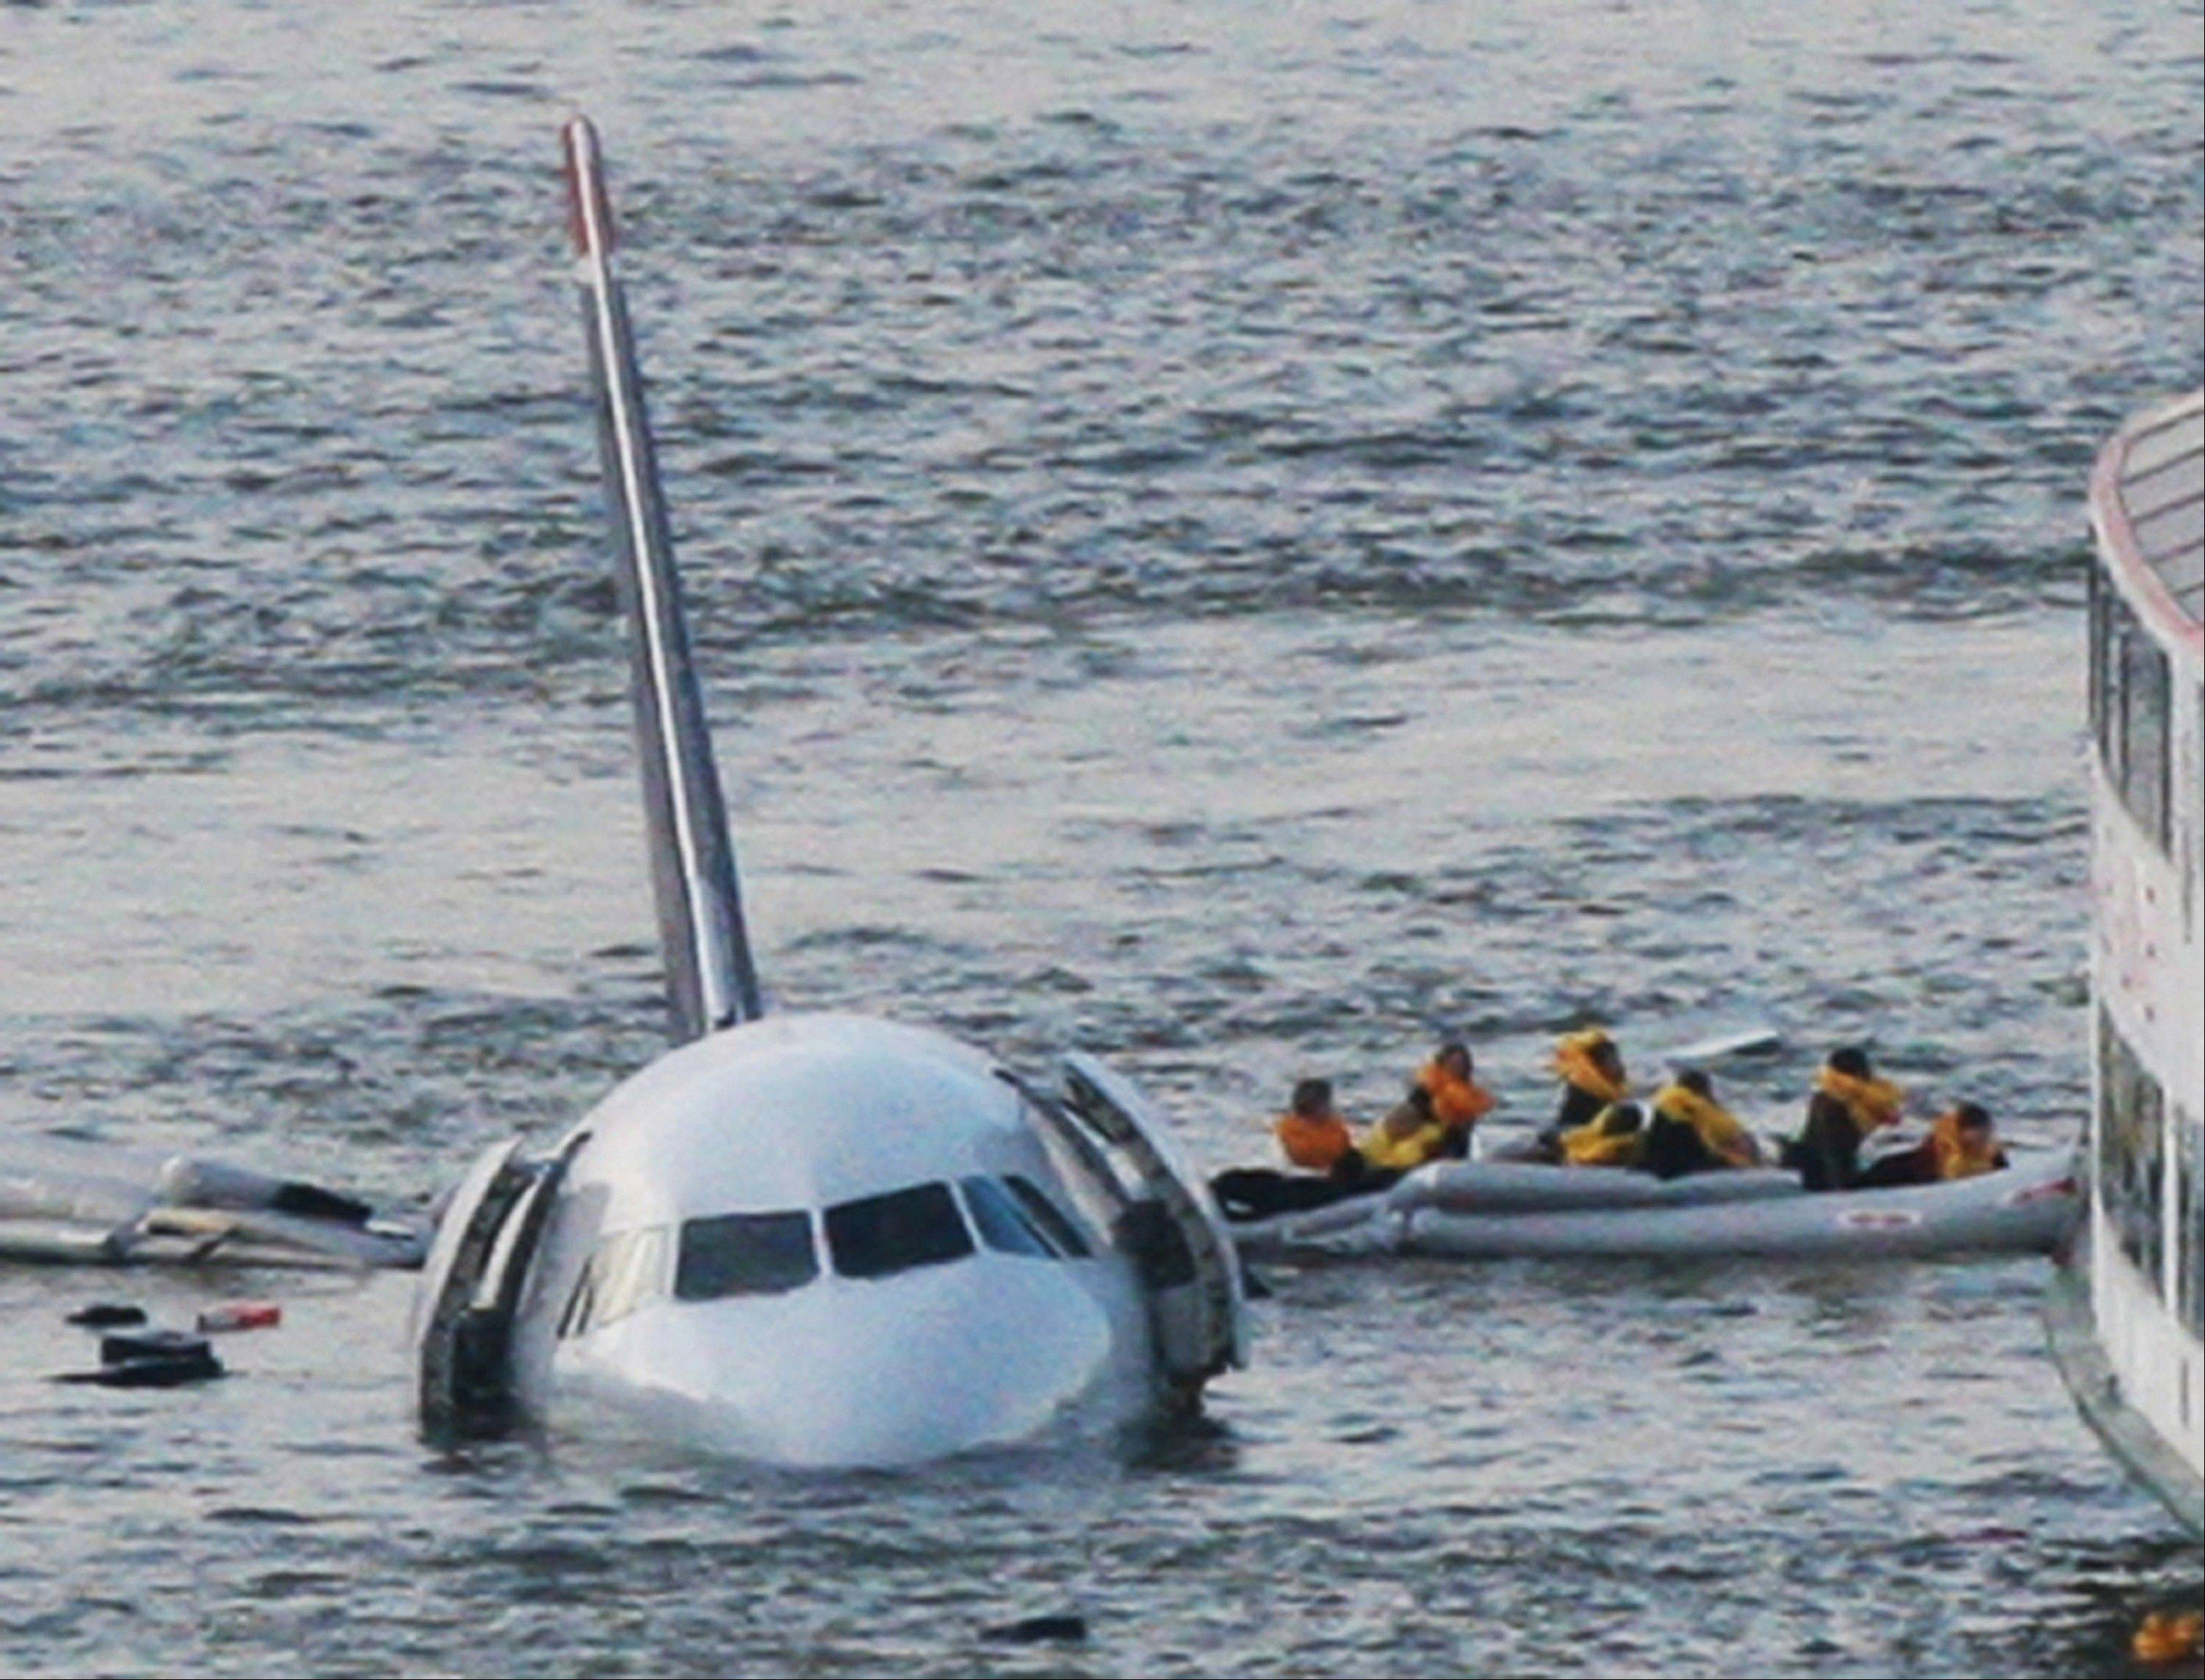 Passengers in an inflatable raft move away from US Airways Flight 1549 that went down in the Hudson River in New York on Jan. 15, 2009.